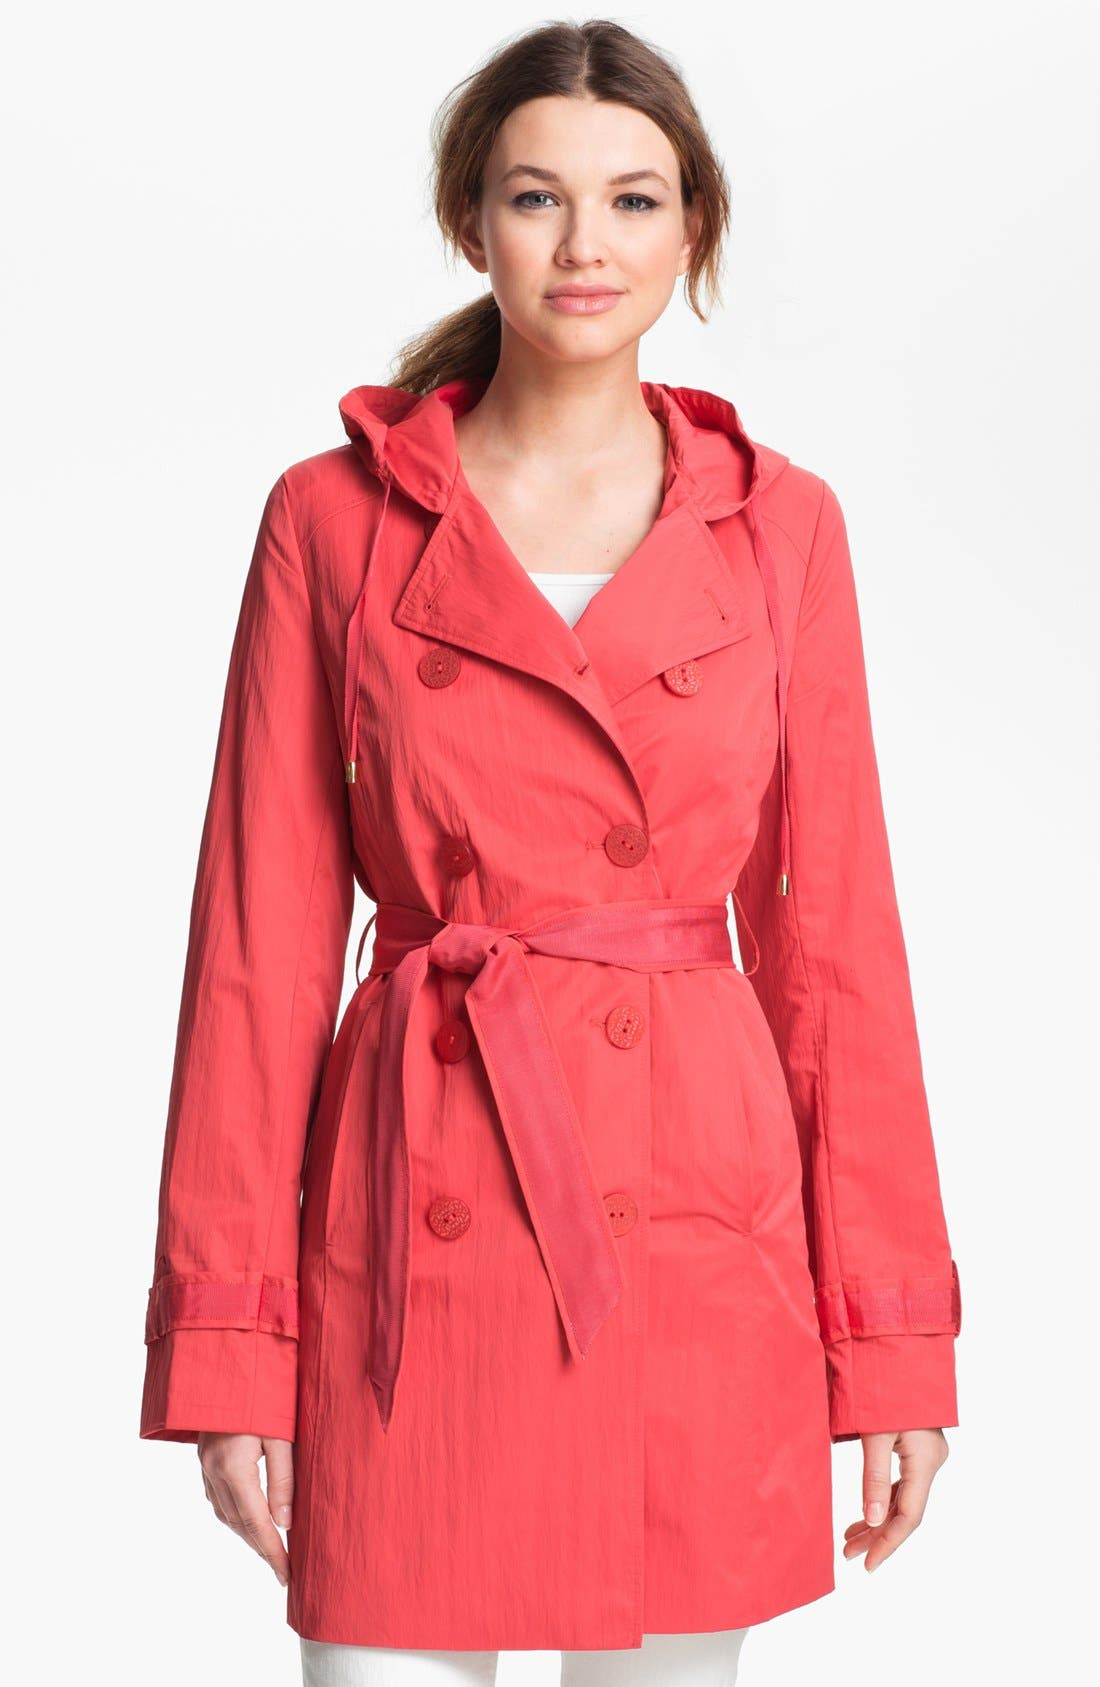 Alternate Image 1 Selected - Tahari 'Morely' Hooded Trench Coat (Regular & Petite)